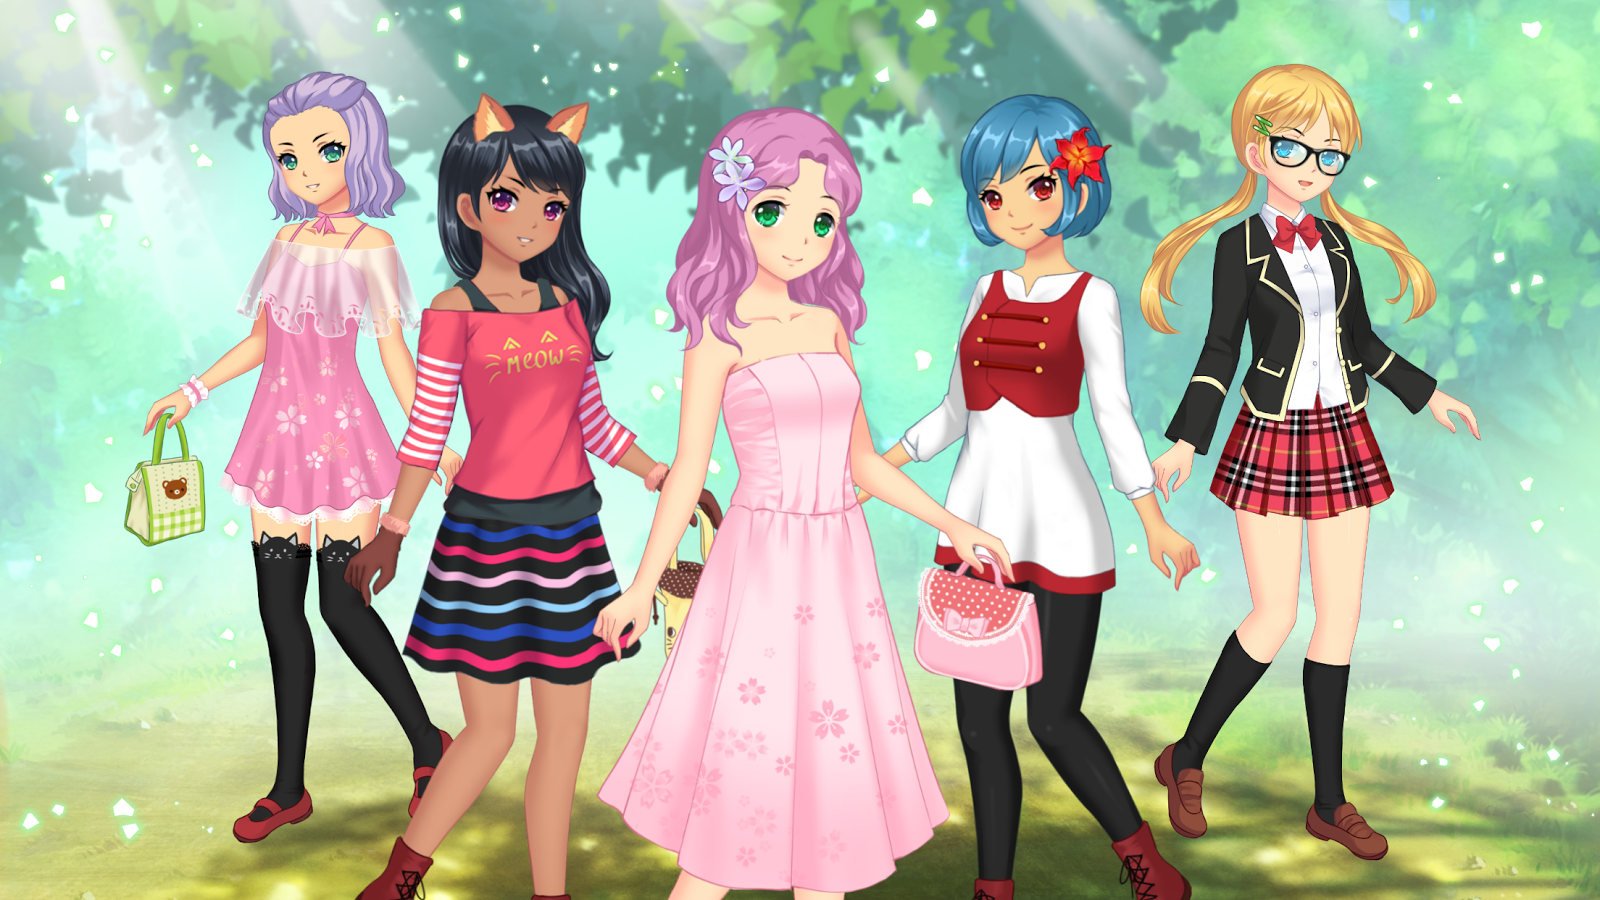 Anime dress up games for girls 1 1 5 screenshot 13